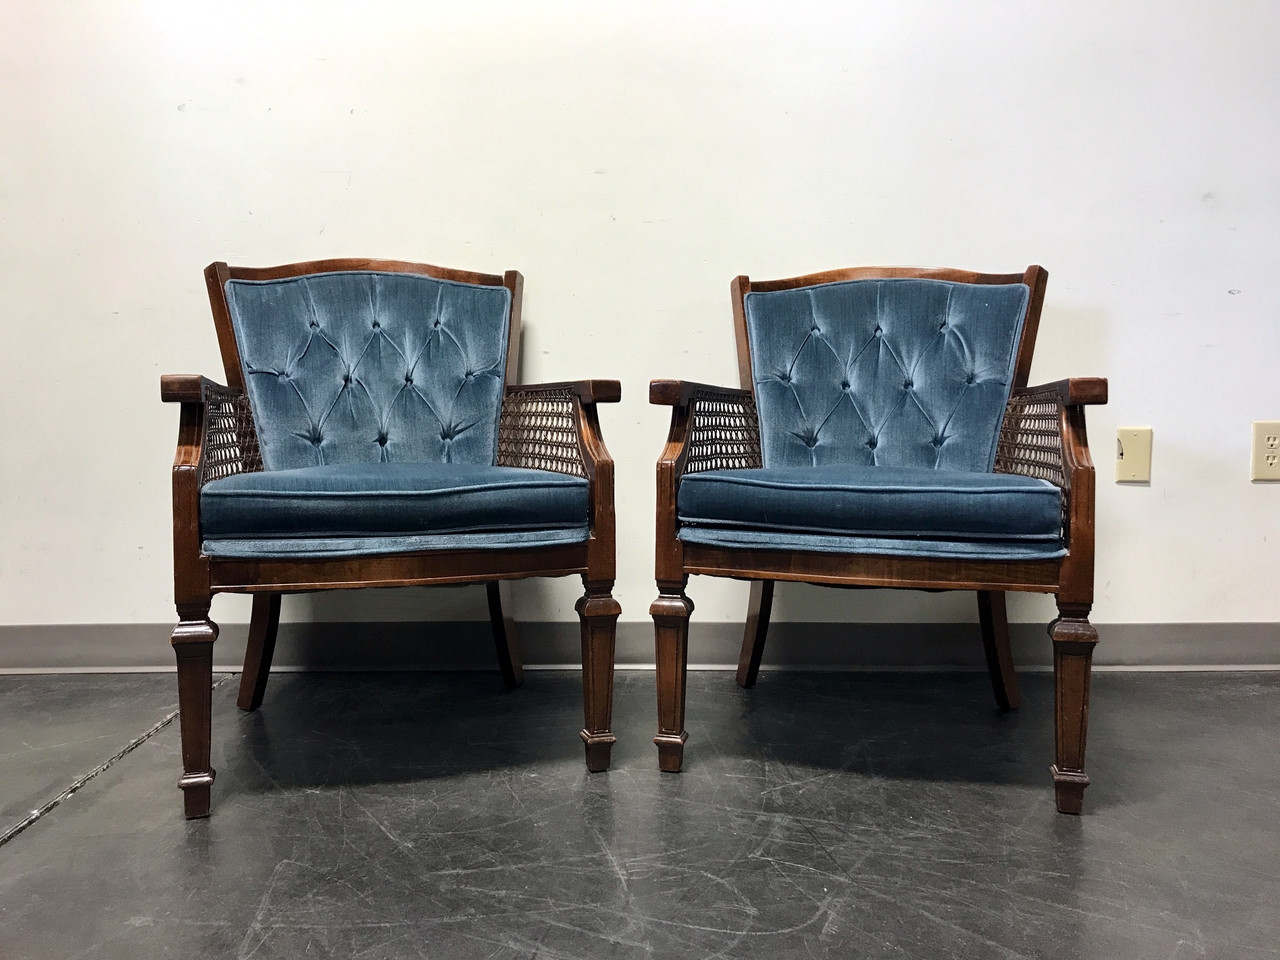 SOLD OUT   Vintage French Style Chairs With Cane And Blue Upholstery